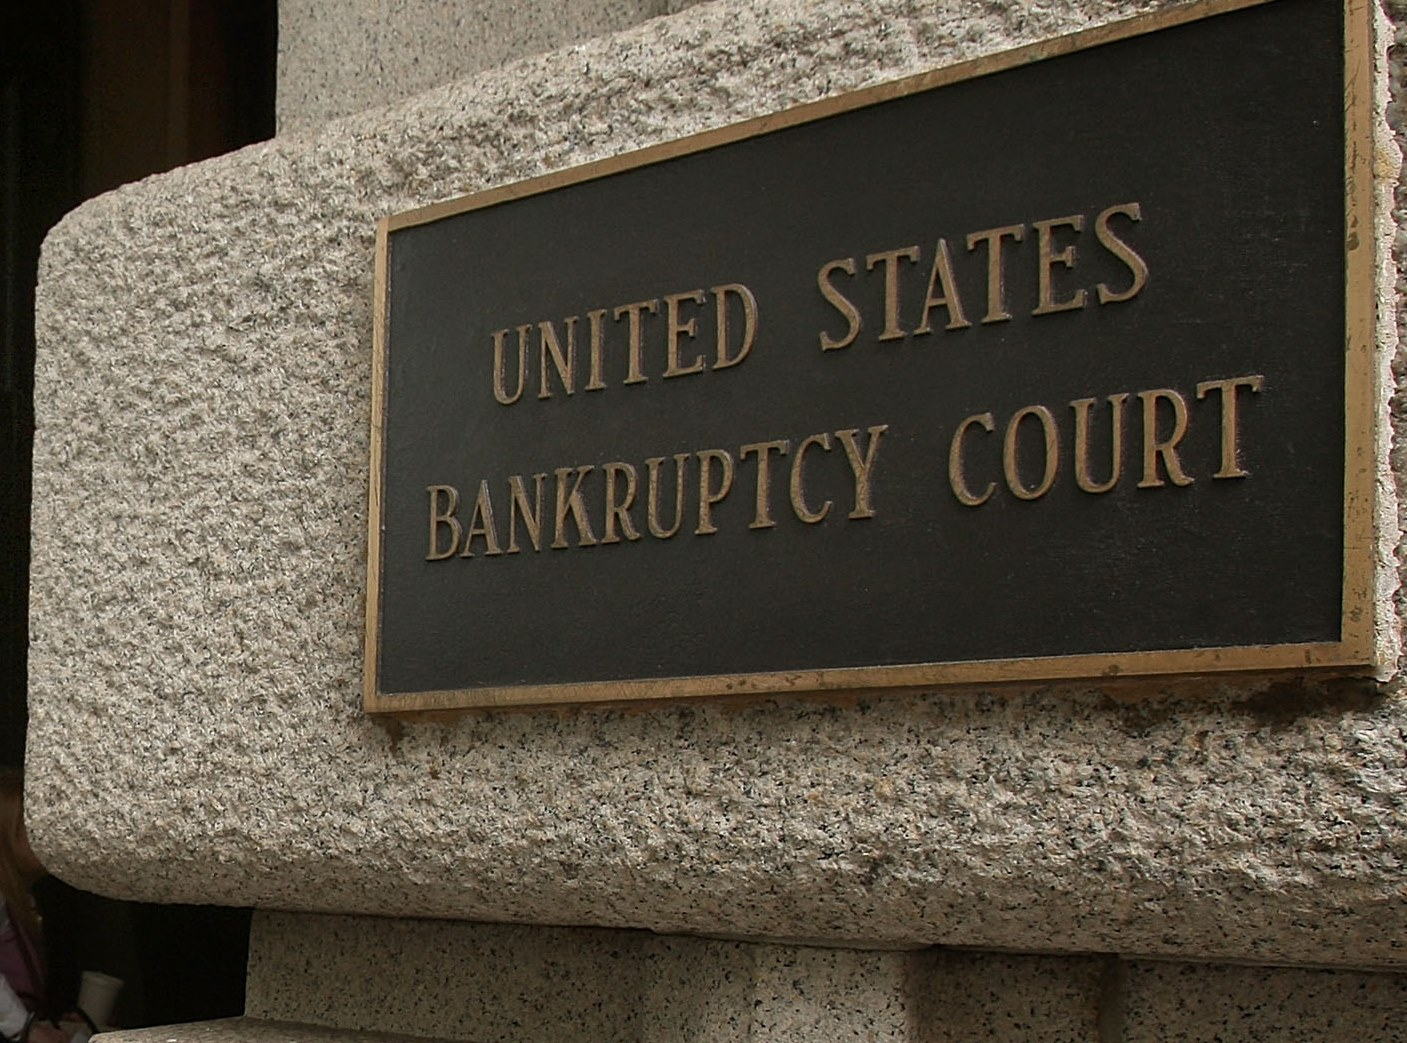 Bankruptcy filings in the Buffalo/Rochester region rose 3.3 percent, according to the U.S. Bankruptcy Court.